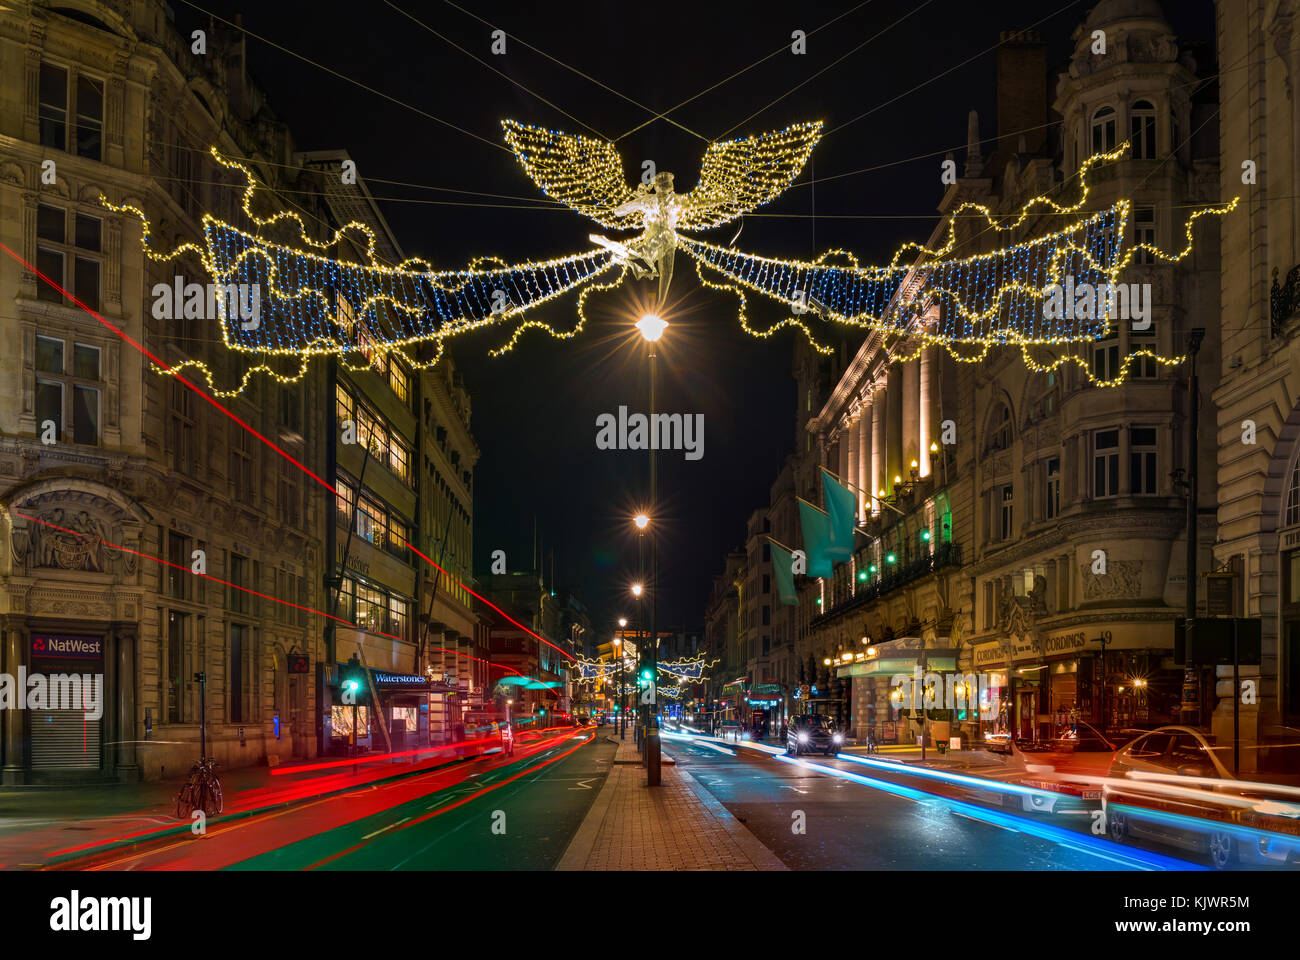 LONDON - NOVEMBER 25, 2017: Christmas lights in Piccadilly, one of the busiests streets in London, attract thousands - Stock Image